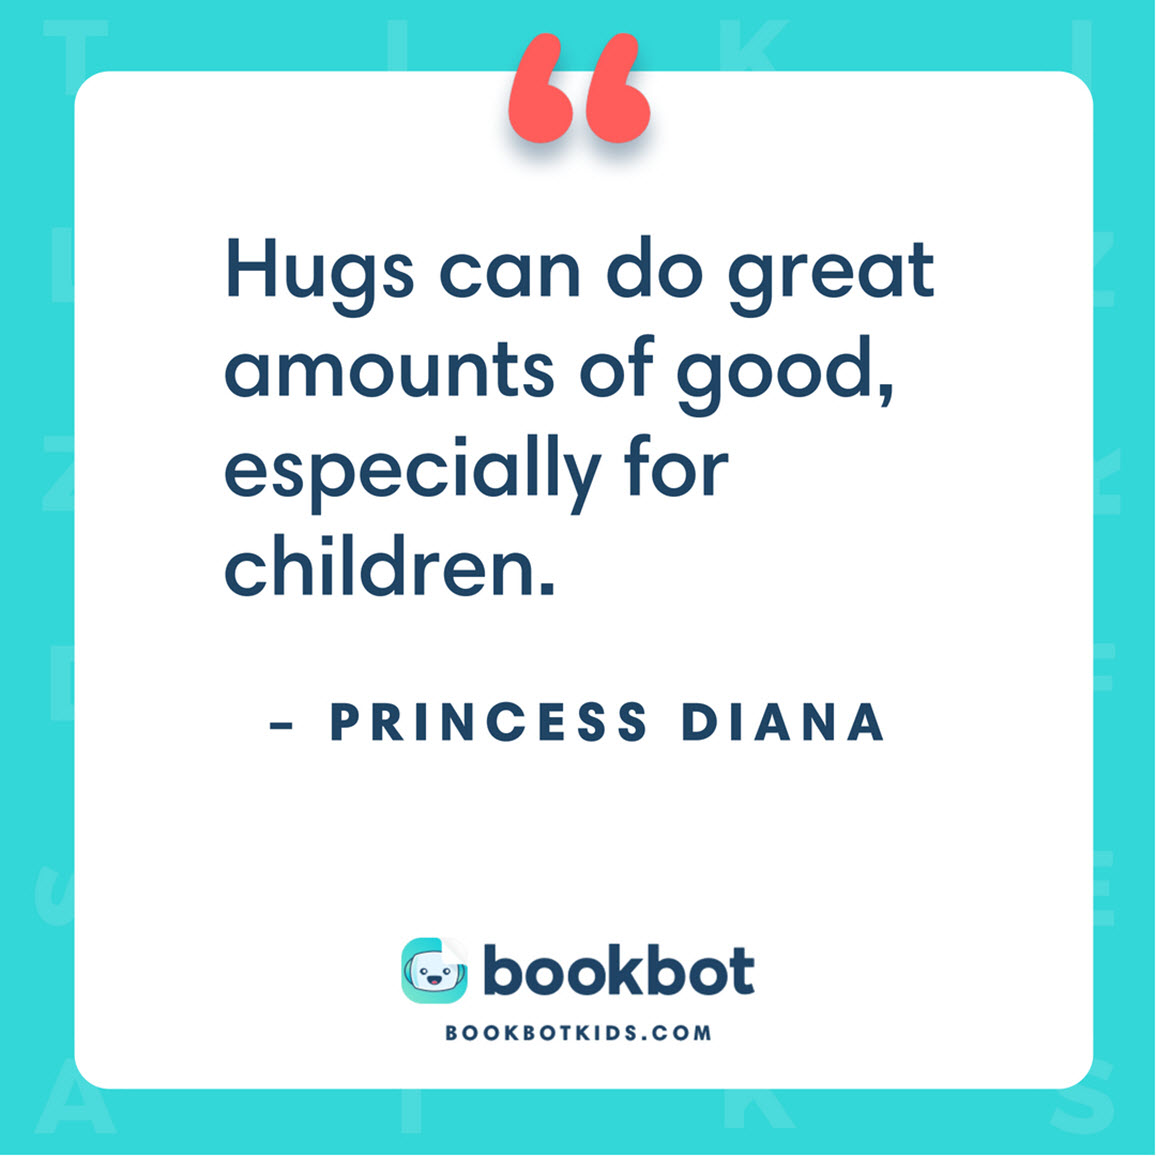 Hugs can do great amounts of good, especially for children. – Princess Diana